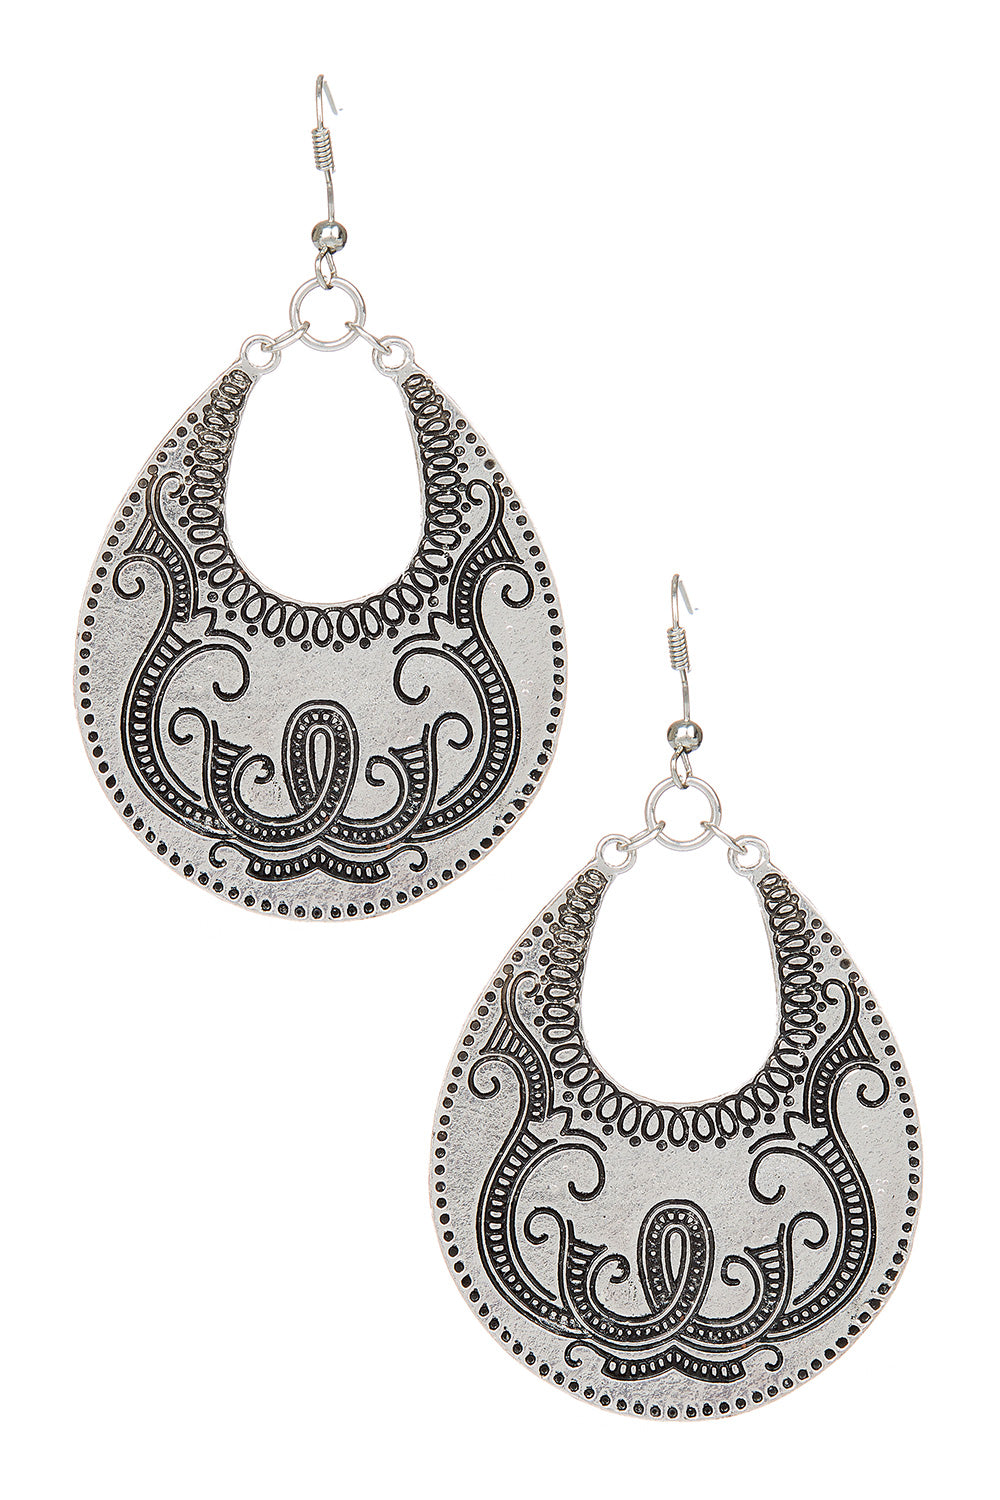 Type 2 Gondola Earrings in Silver